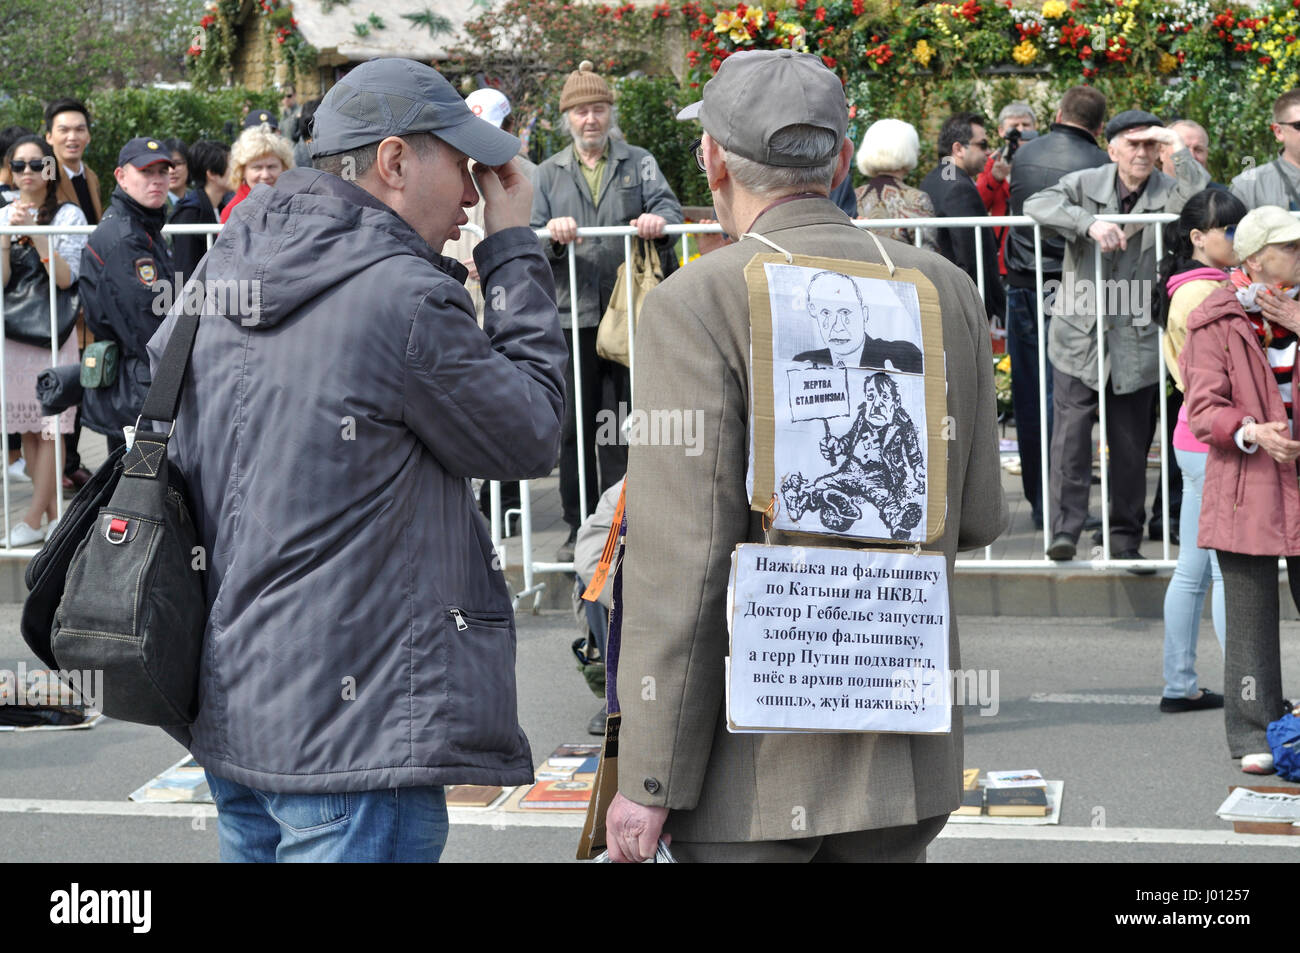 Participants of the Russian Communist Workers' Party demonstration during a Day of Spring and Labour. - Stock Image